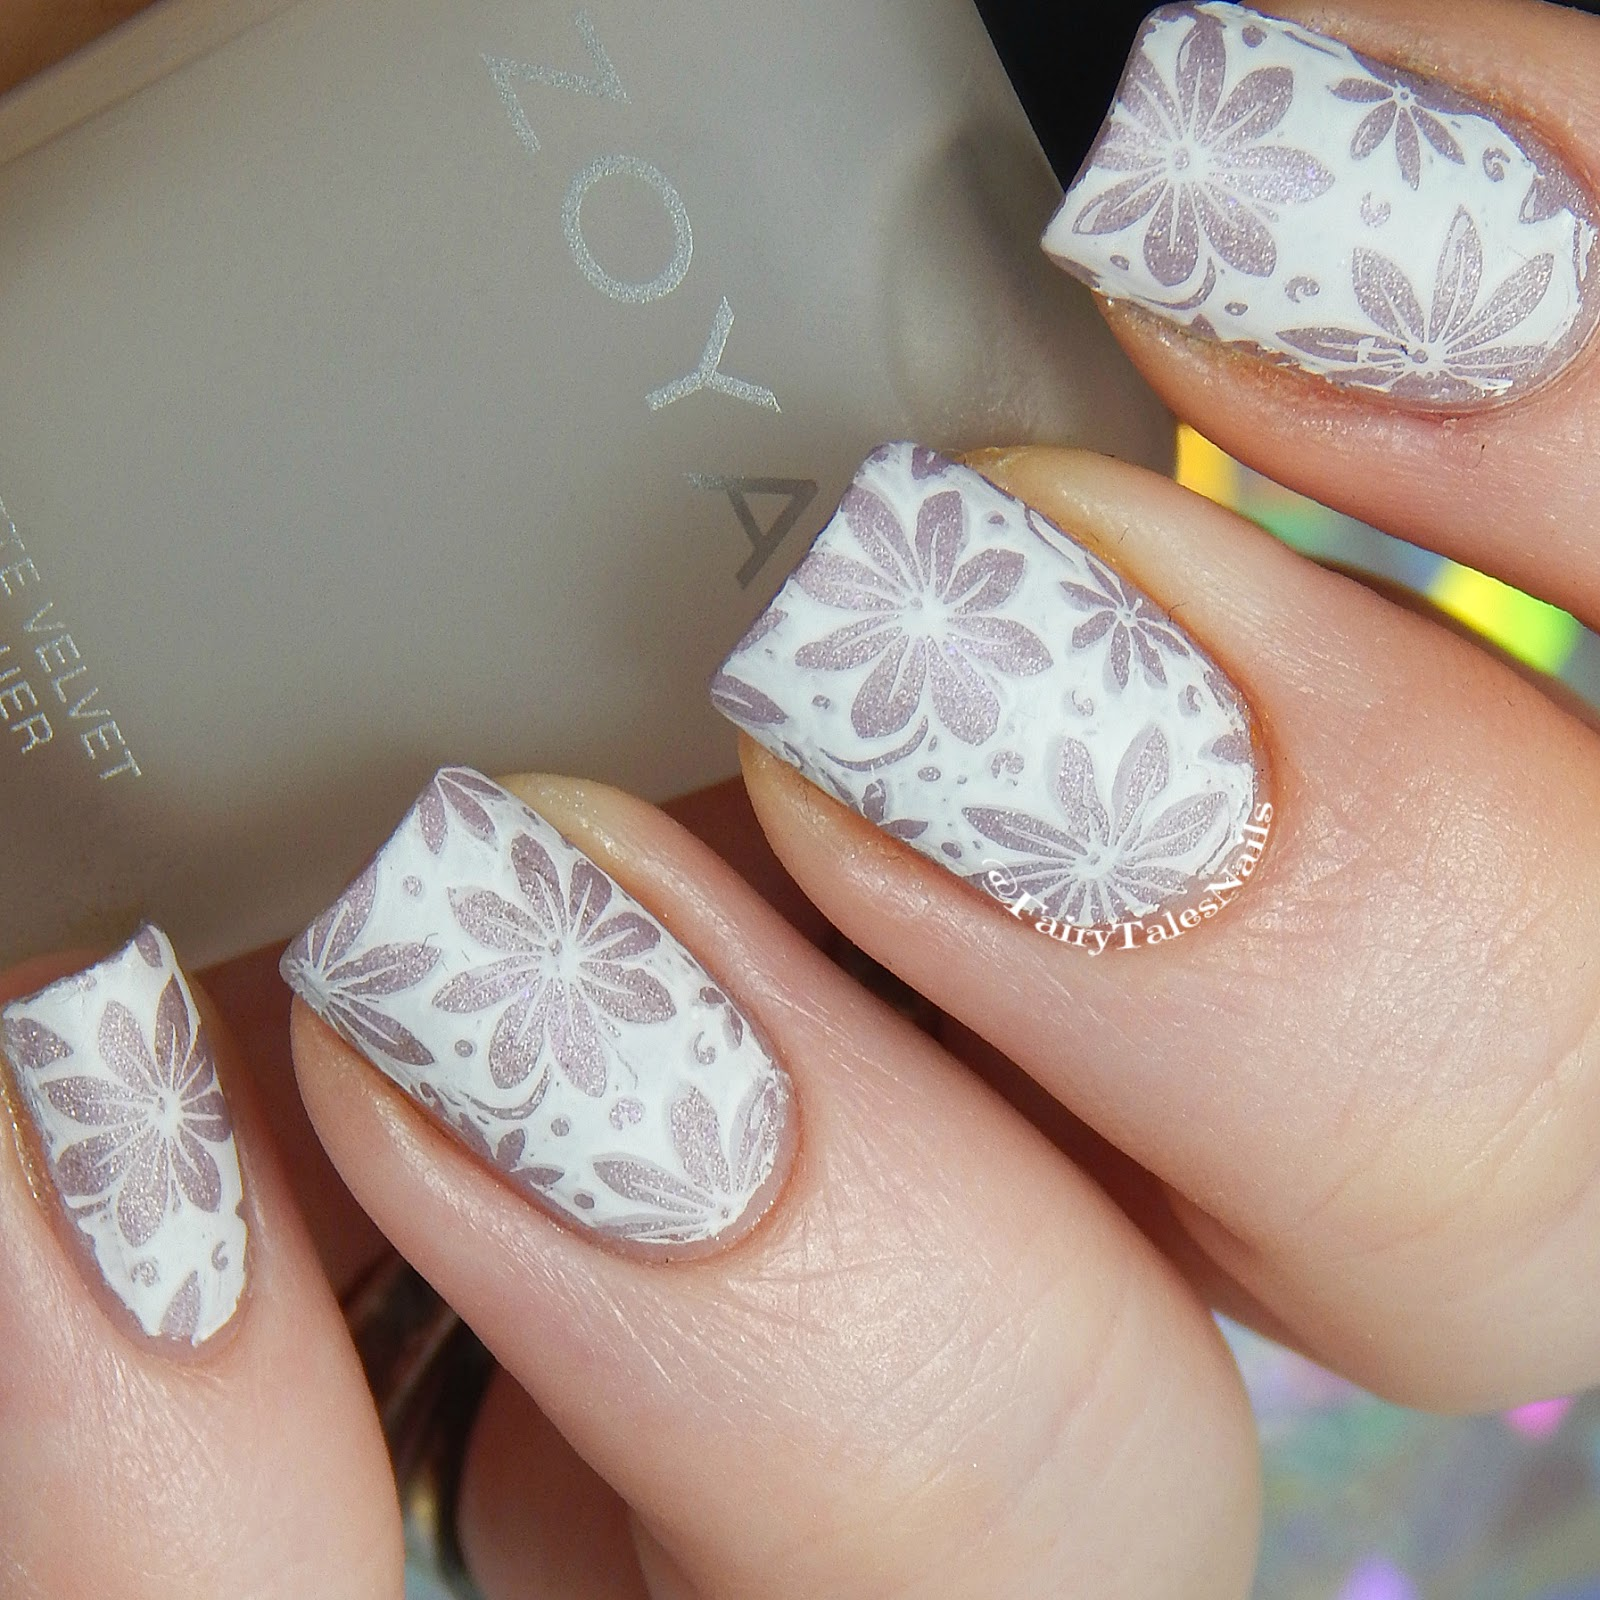 Fairytales nails 26 great nail art ideas work appropriate nail art not sure if these are work appropriate but i would definitely wear them in an office environment for the base colour i used a beautiful powder perfect prinsesfo Images